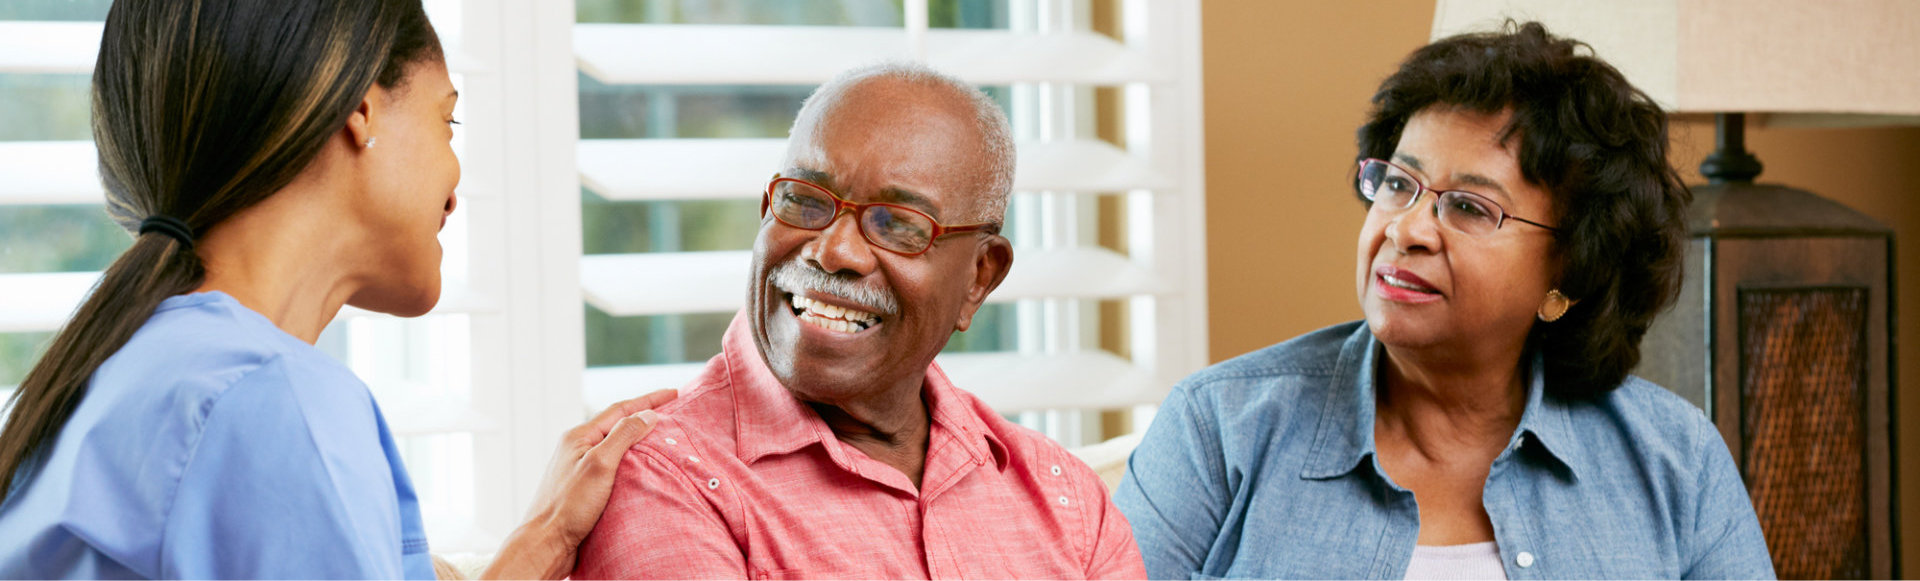 caregiver and elderly couple both smiling